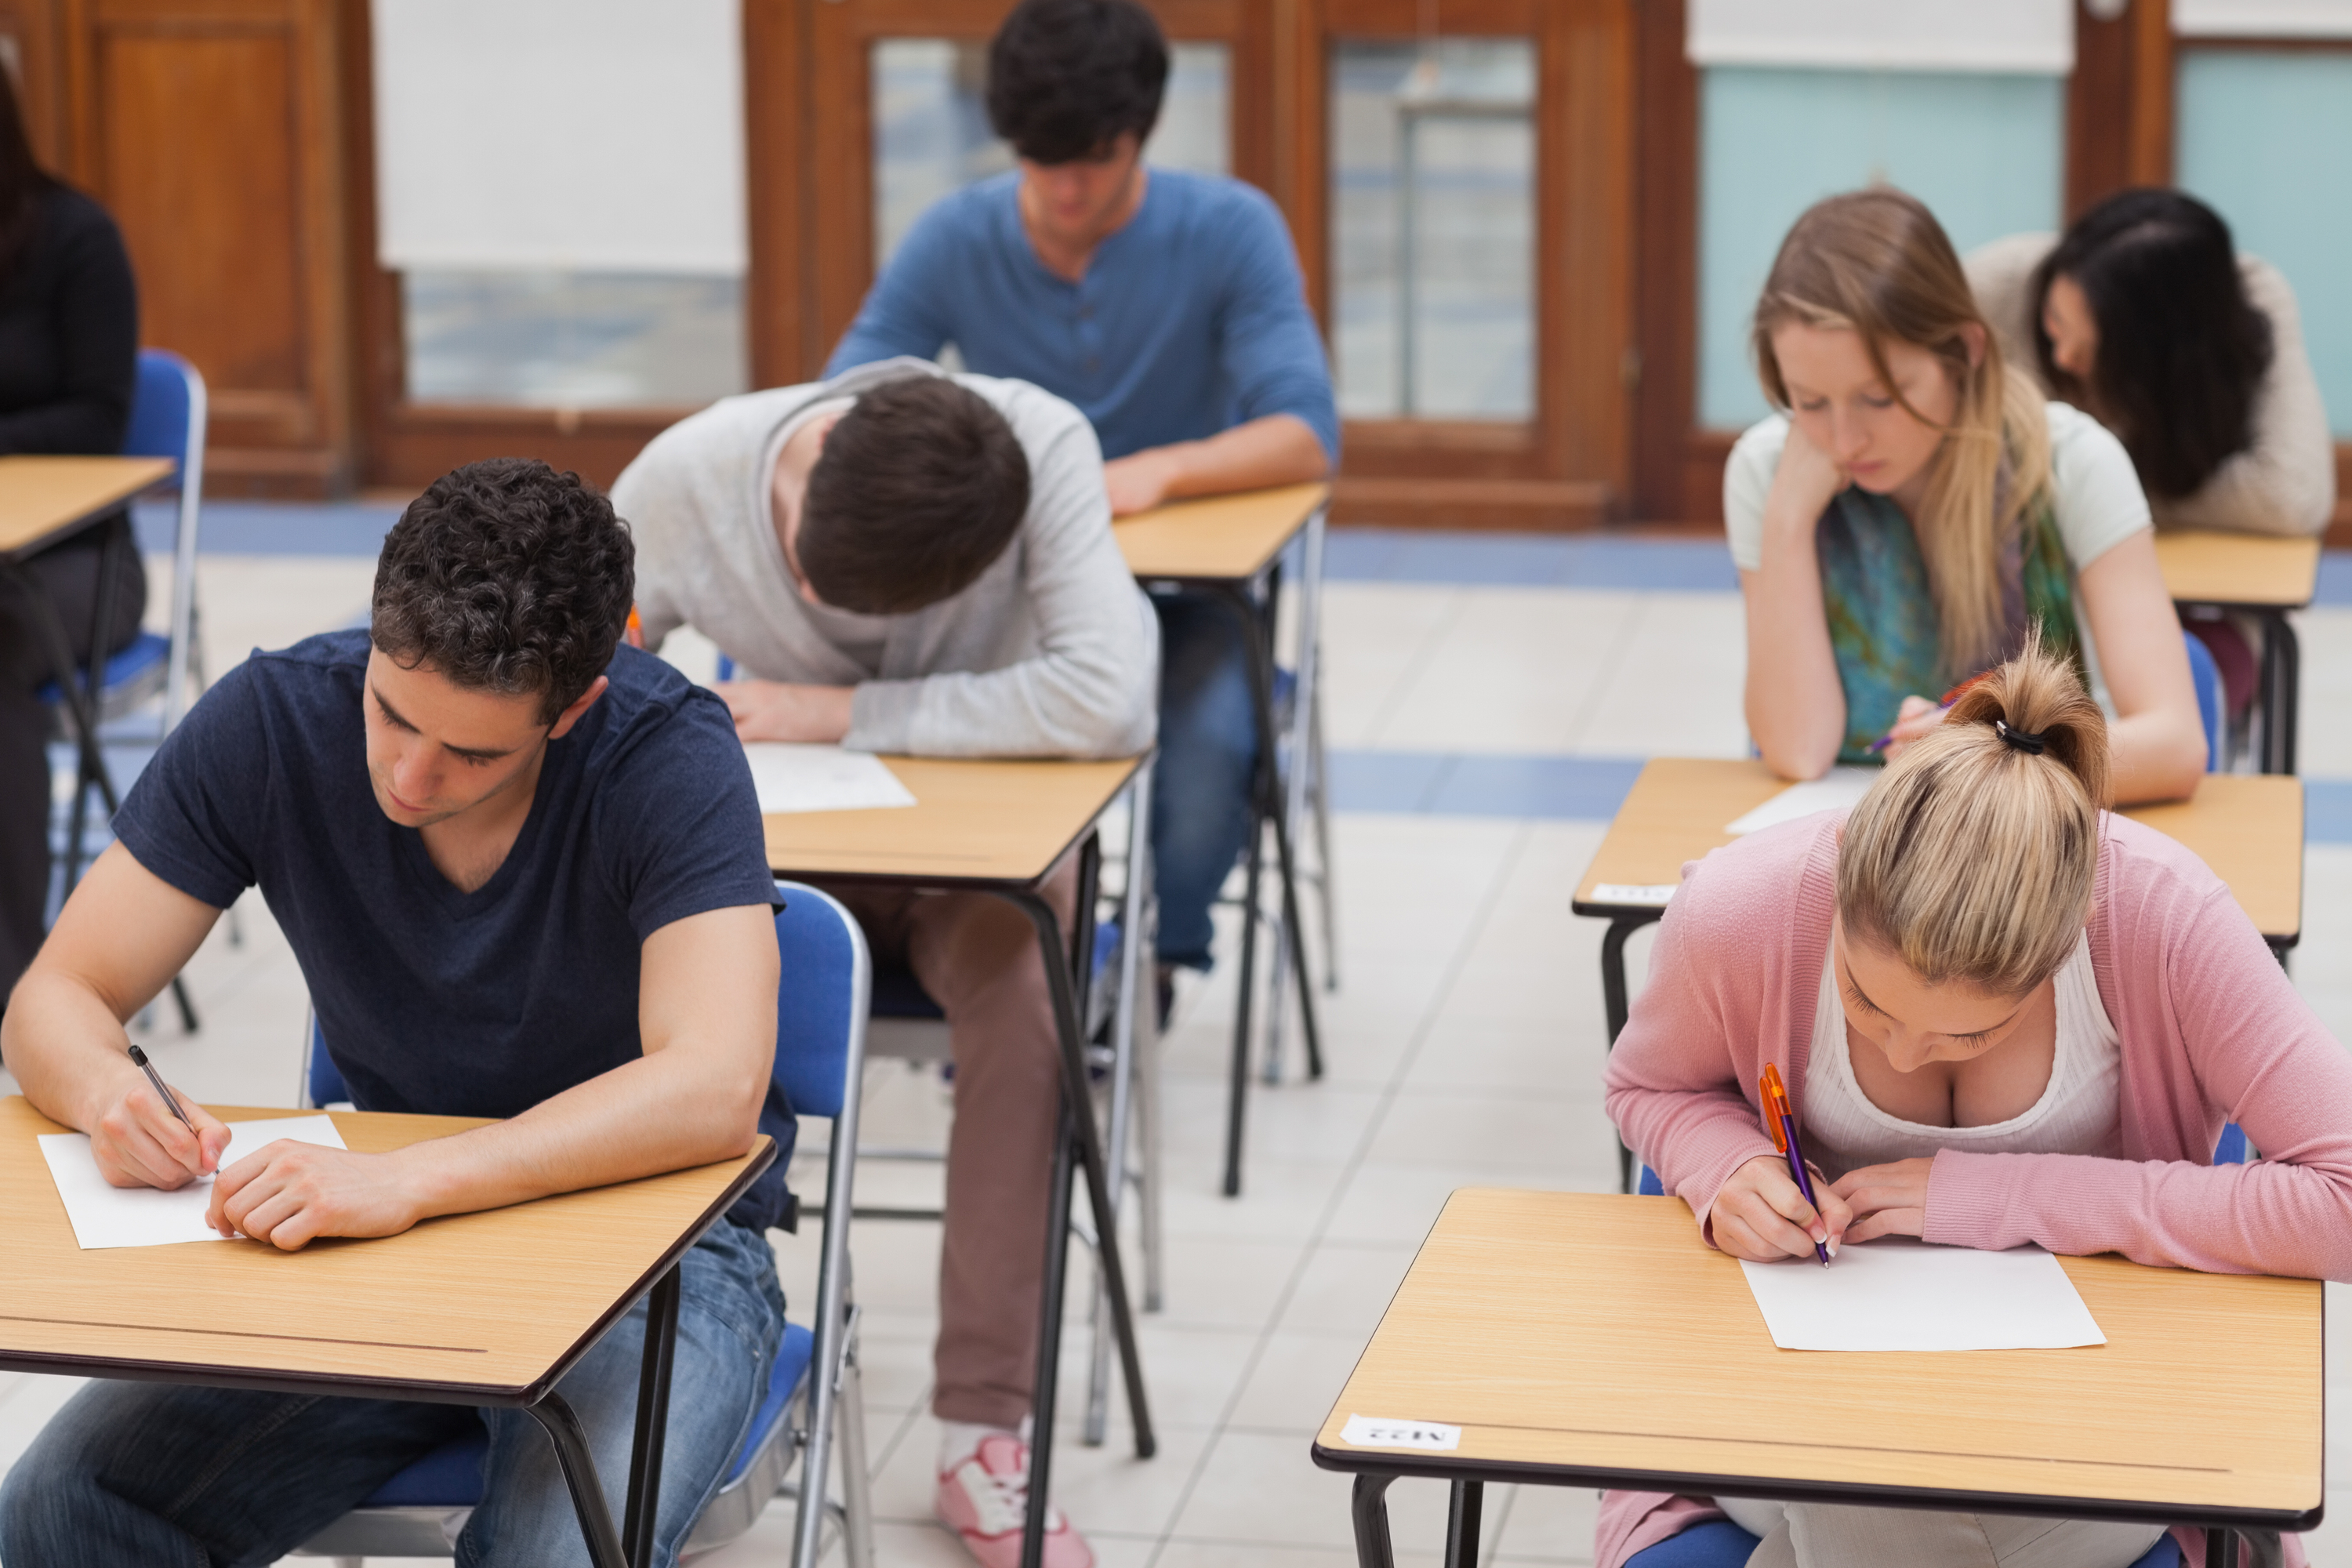 Students Sitting A Test In An Exam Hall In College